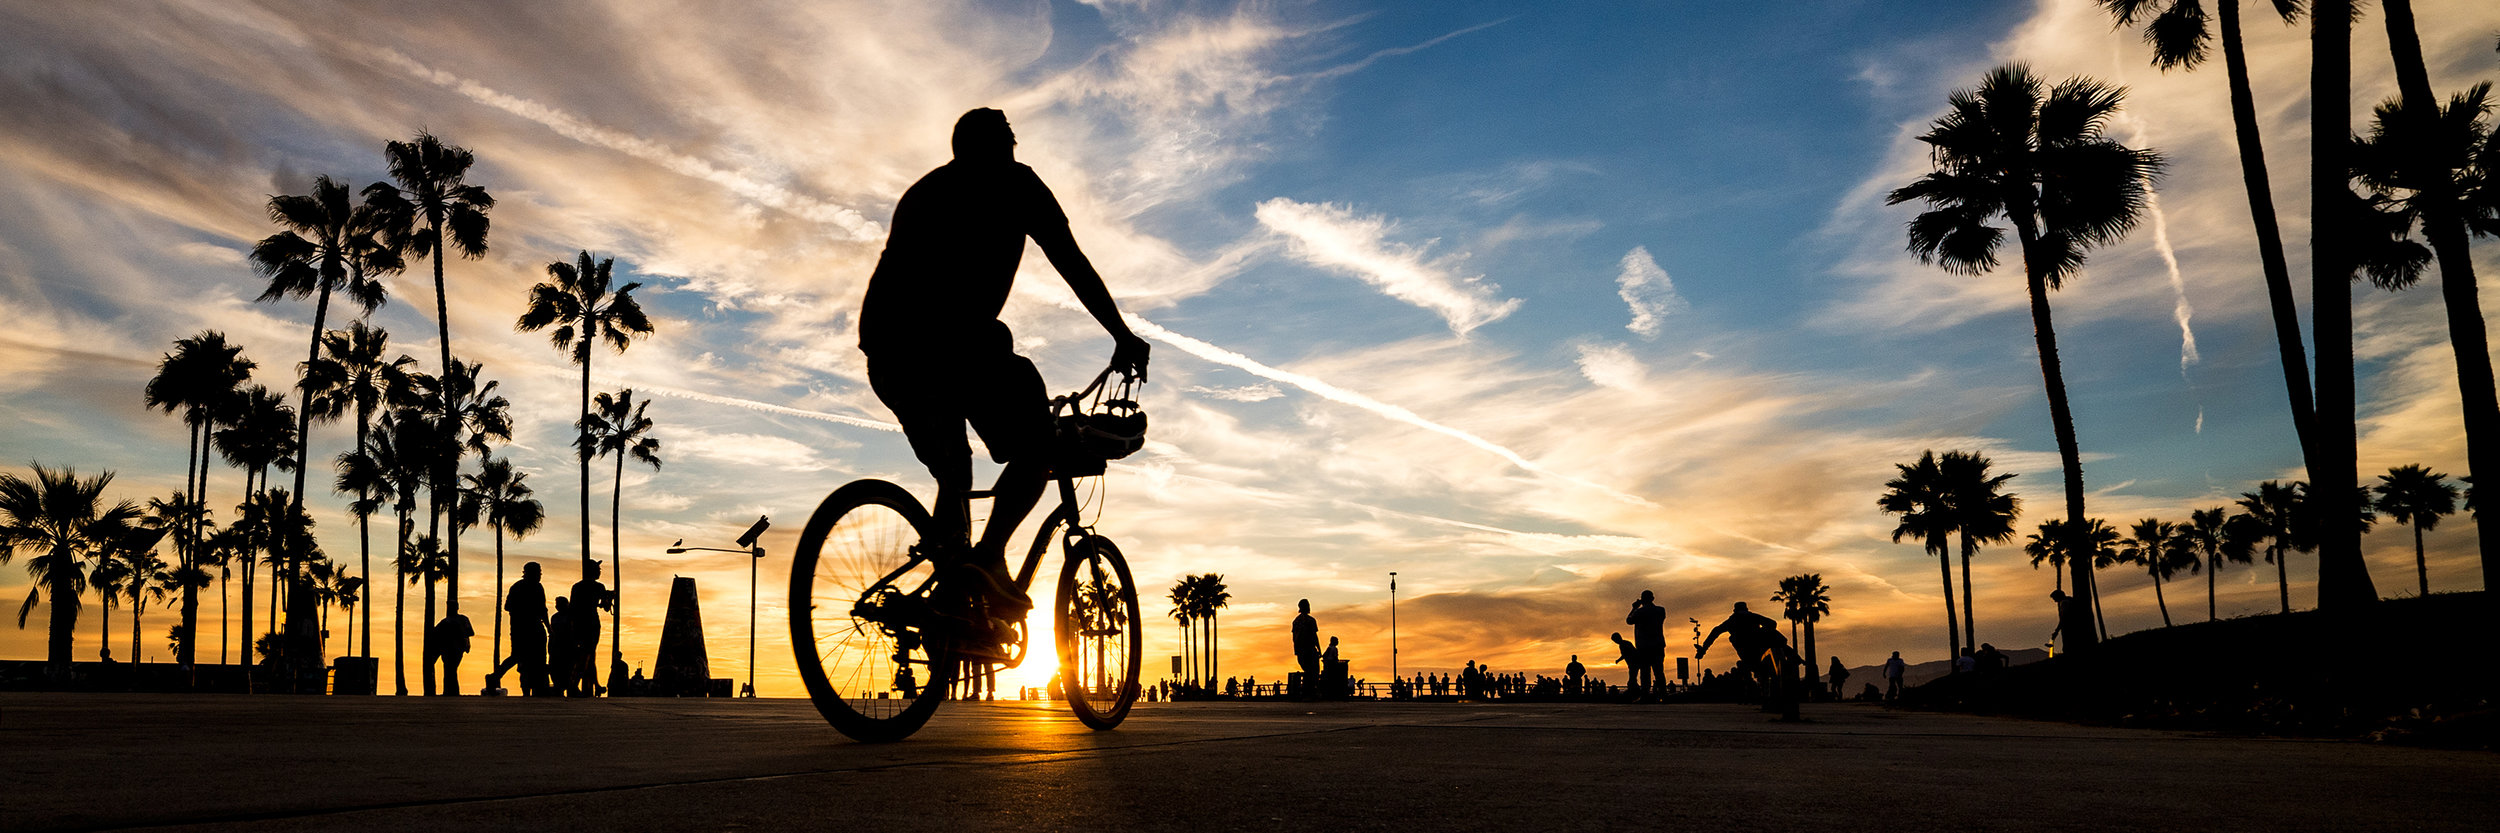 boardwalk_bike_sunset.jpg